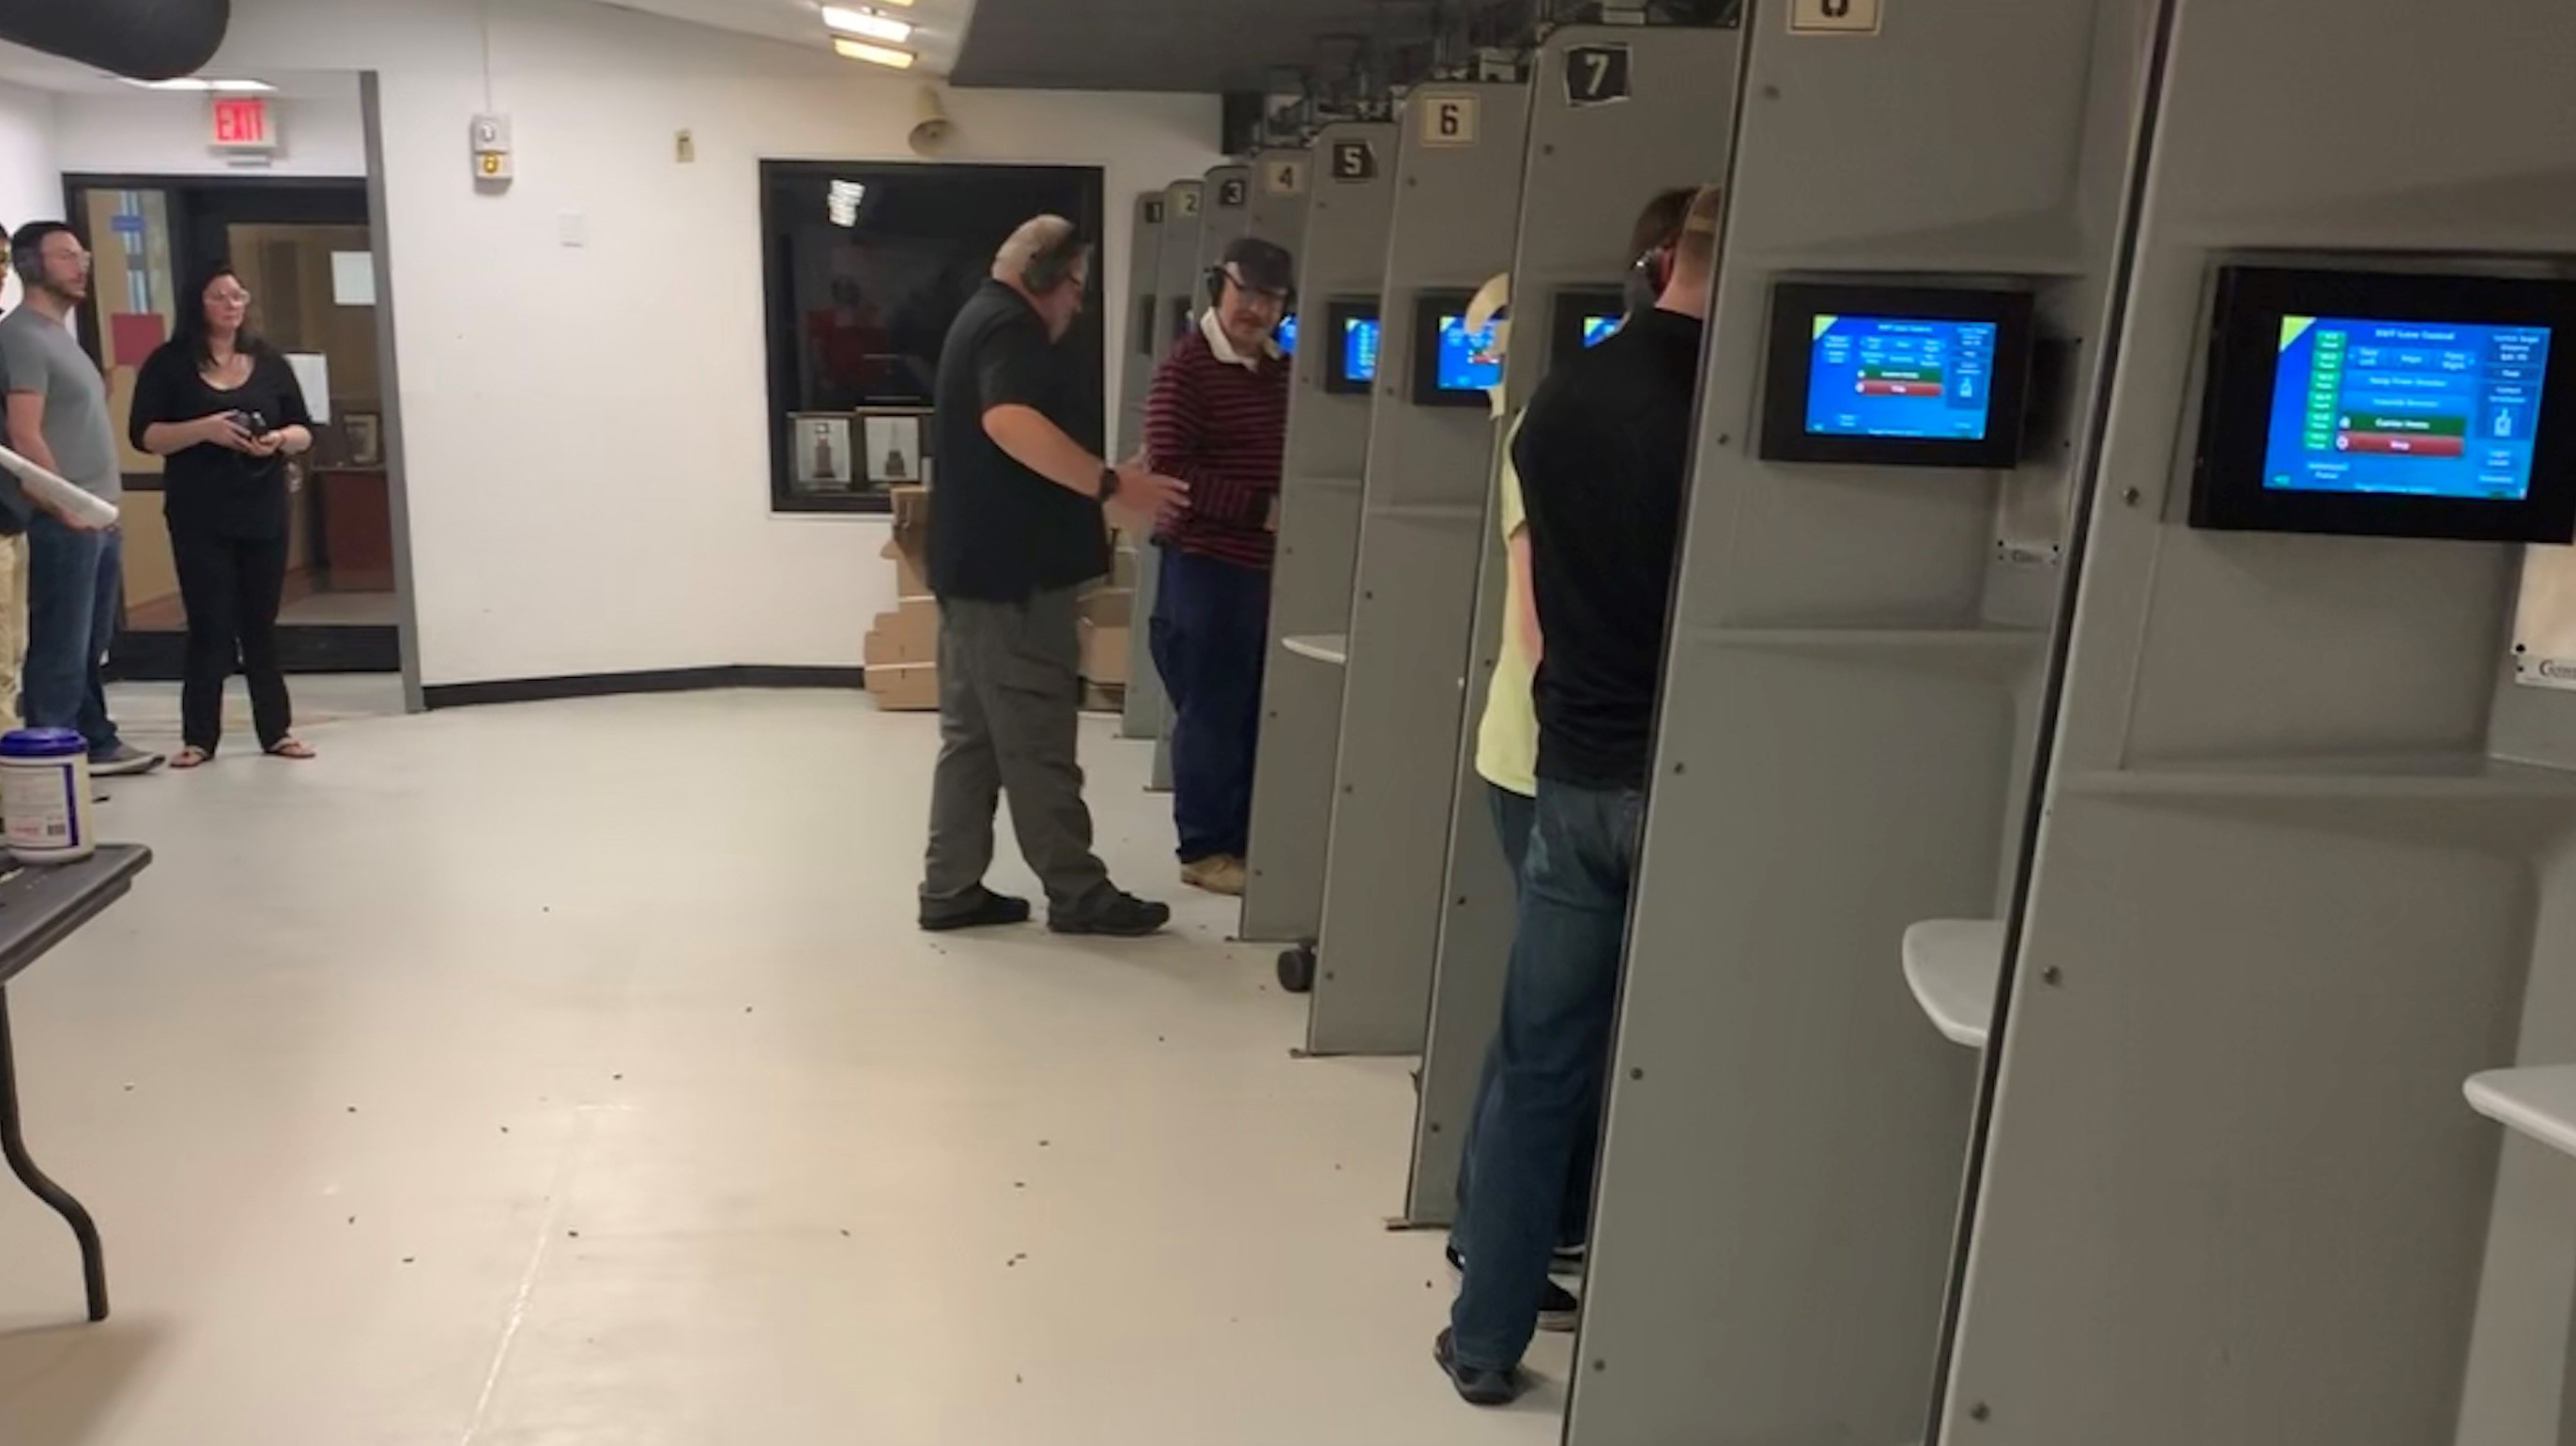 Second part of training at the Tronsrue Marksmanship Center.